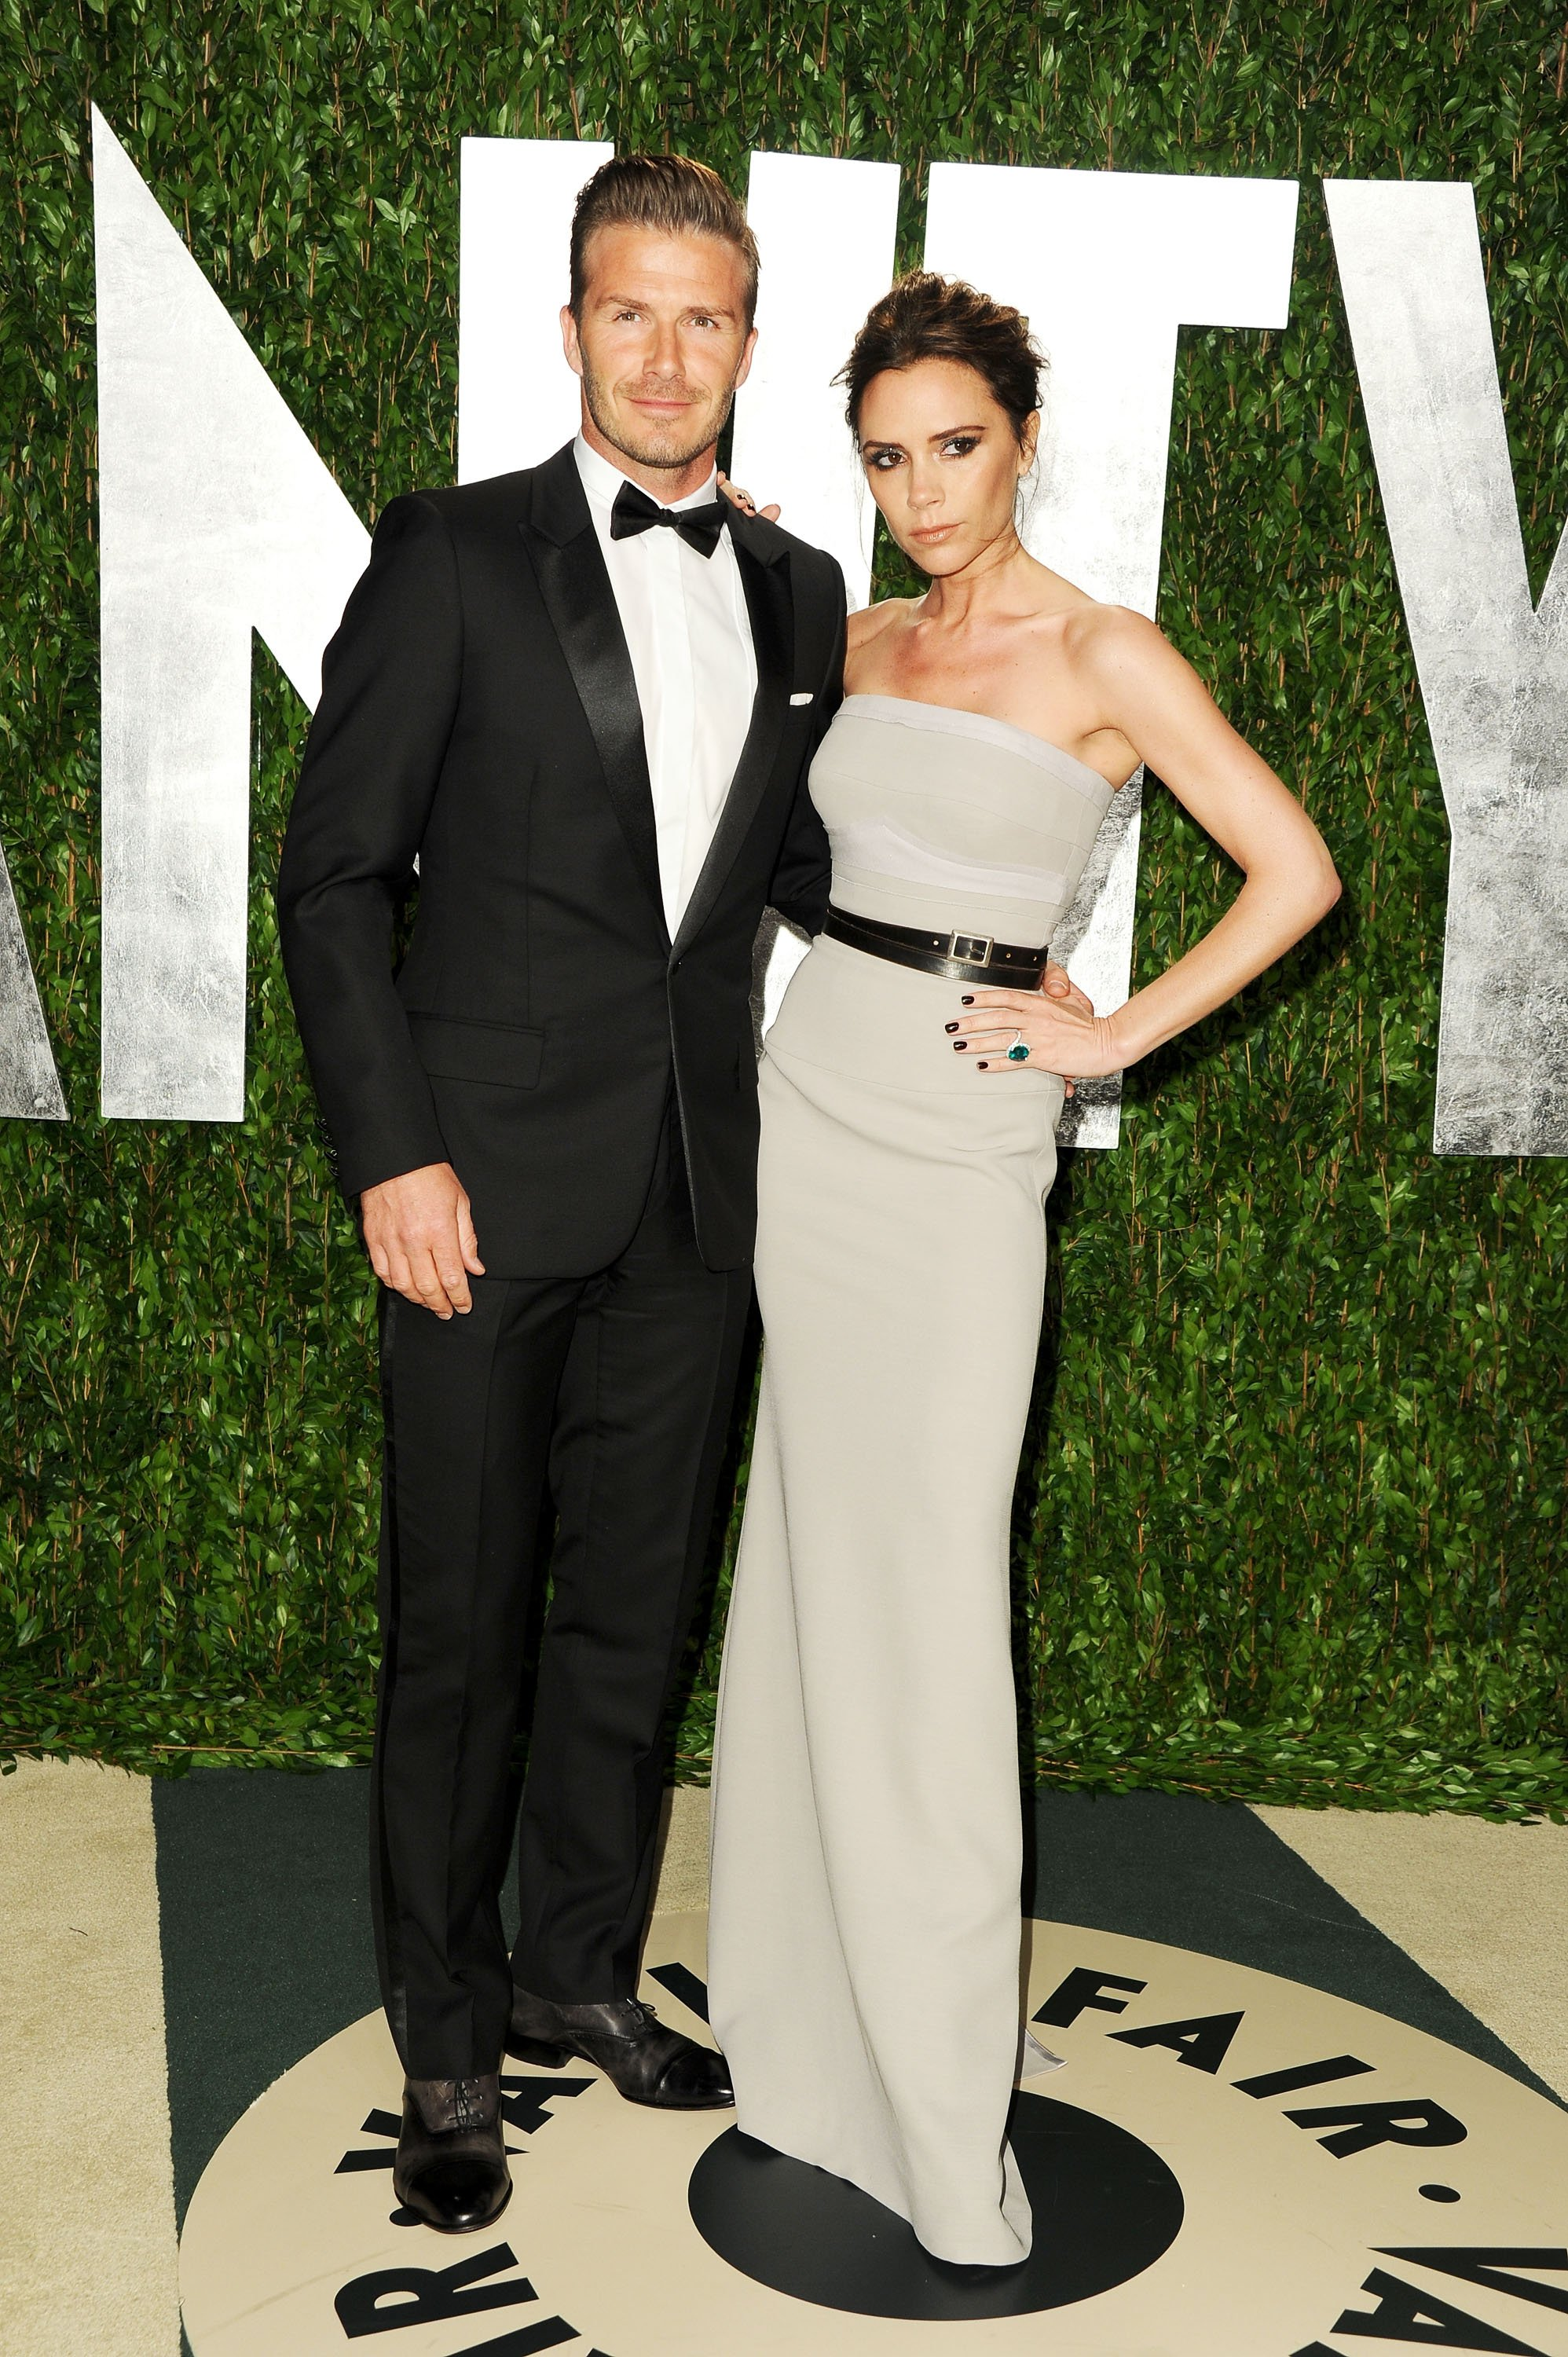 Image Credits: Getty Images | David and Victoria are a super couple